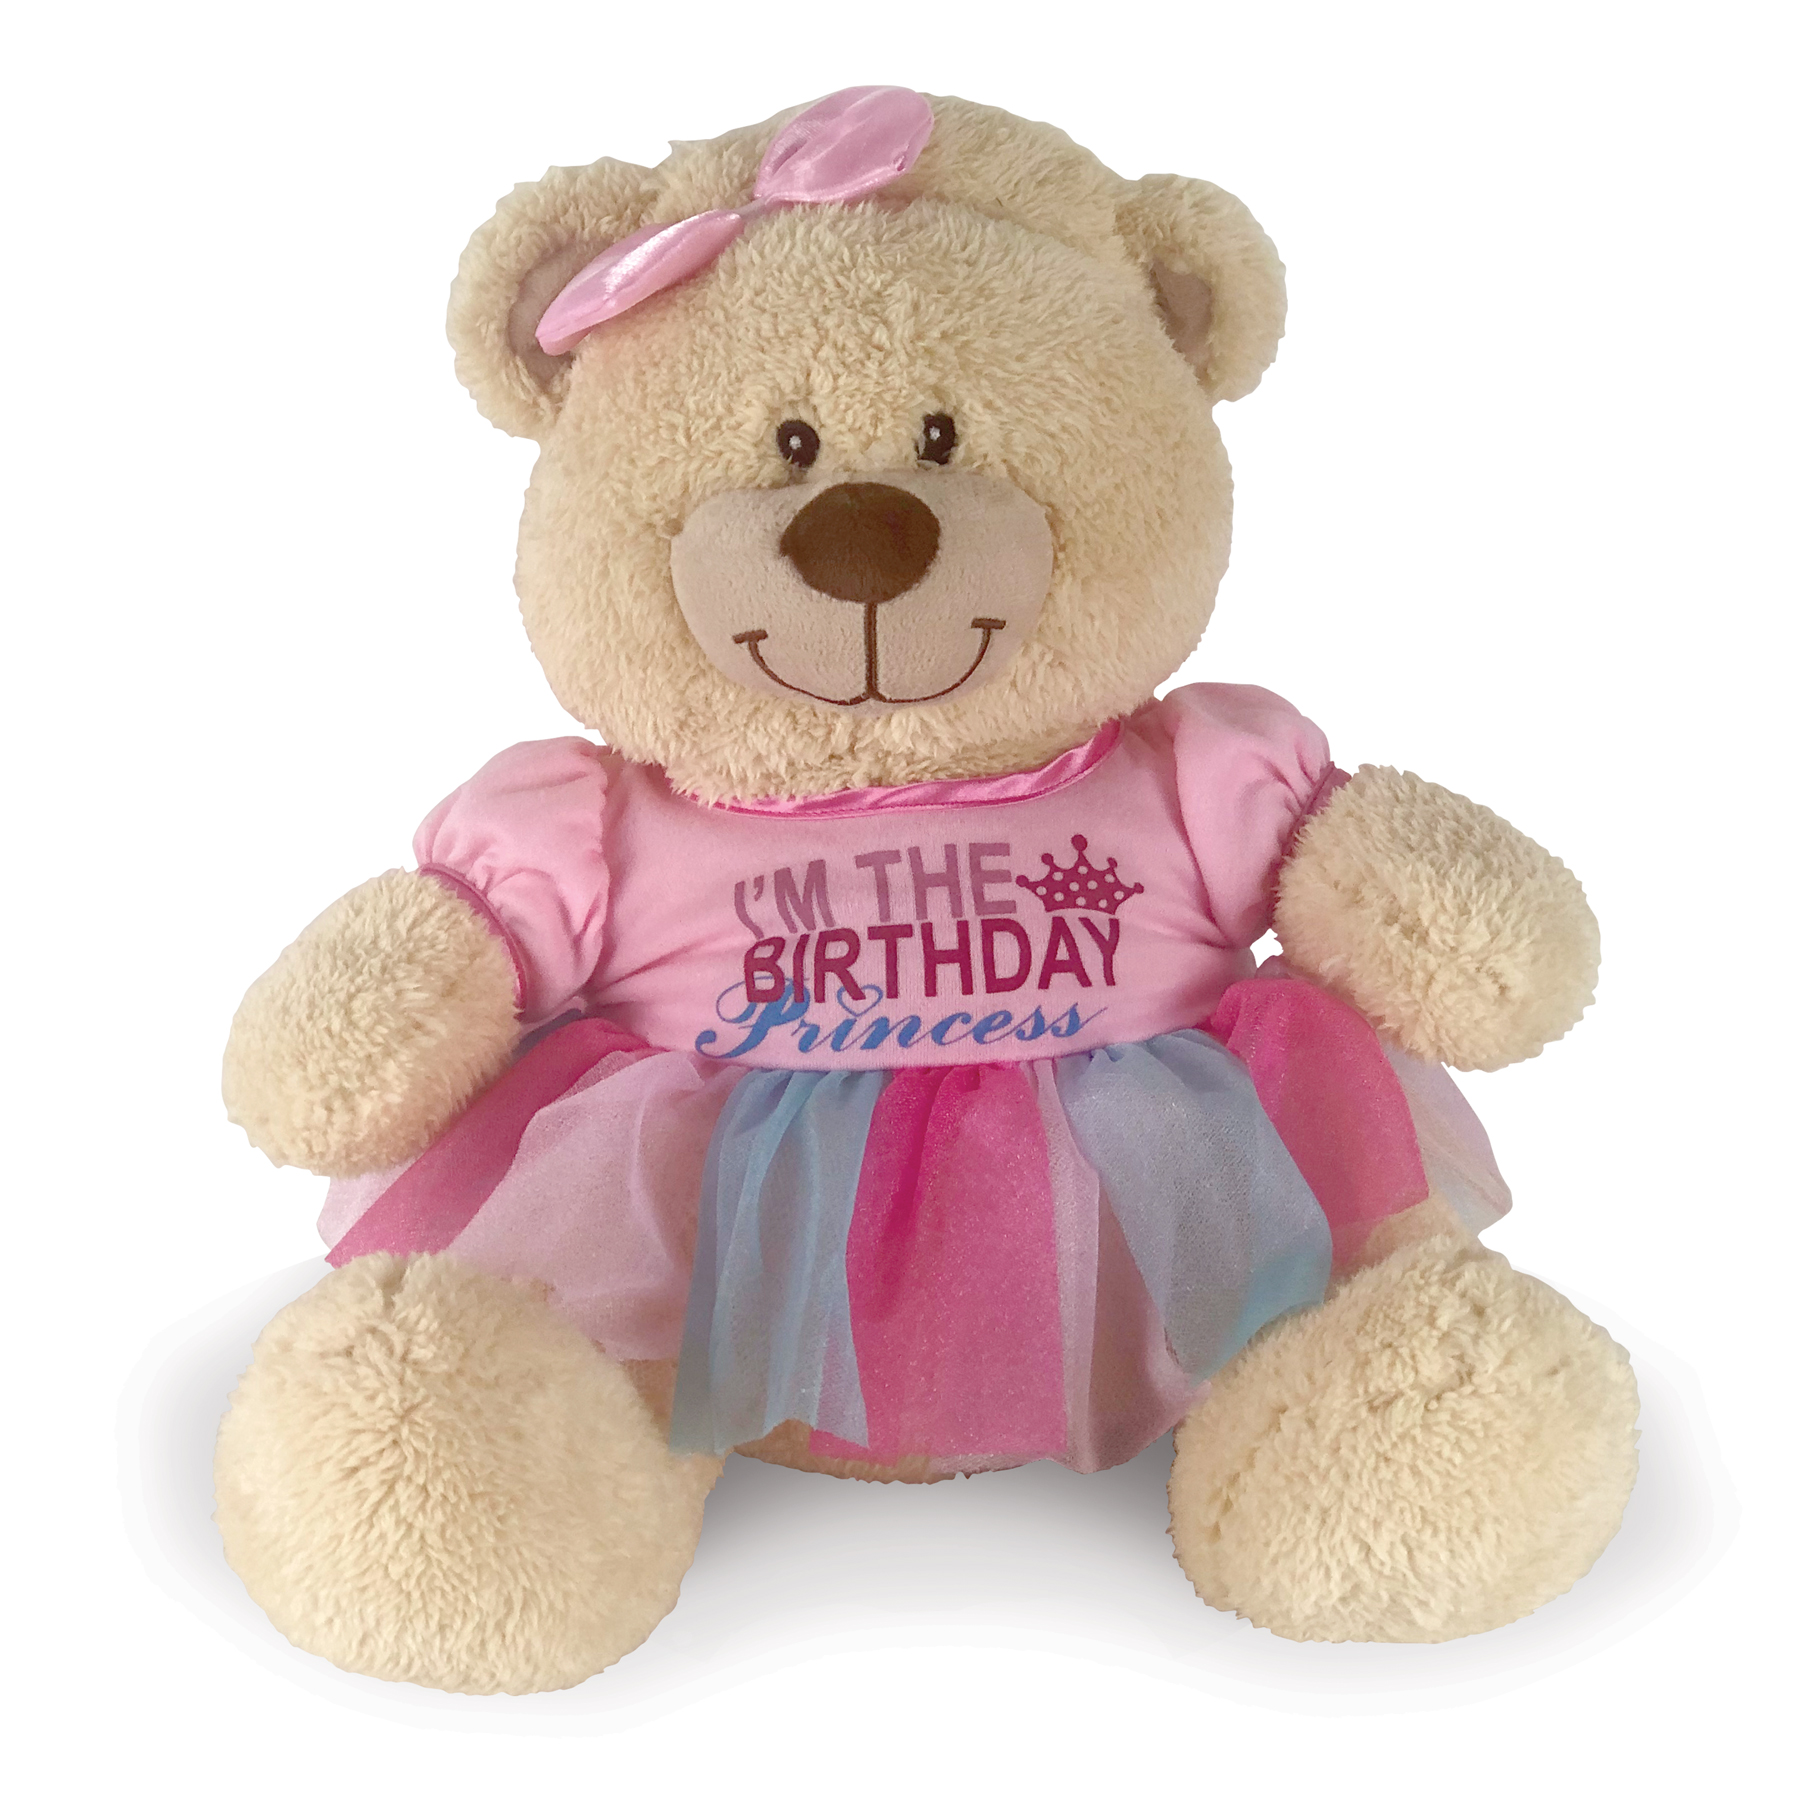 Birthday Princess Dress for Teddy Bear | Pink Birthday Tutu for Stuffed Animal